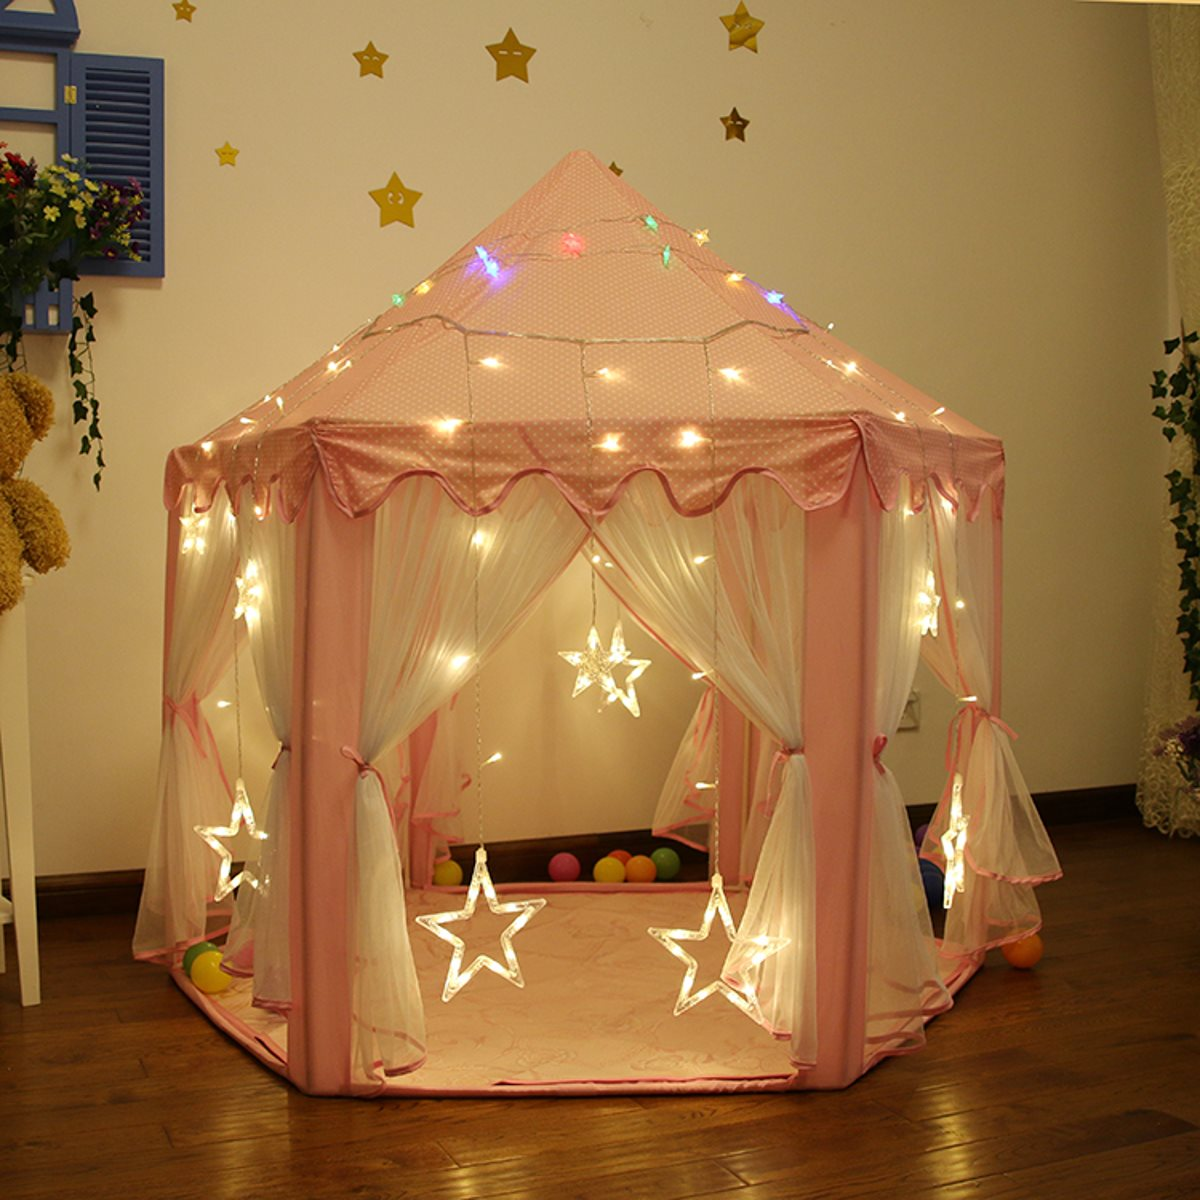 Portable Princess Castle Play Tent With Led Light Children Activity Fairy House kids Funny Indoor Outdoor Playhouse playing Toy guangzhou funny princess castle jumper inflatable princess bouncy castle princess style bed